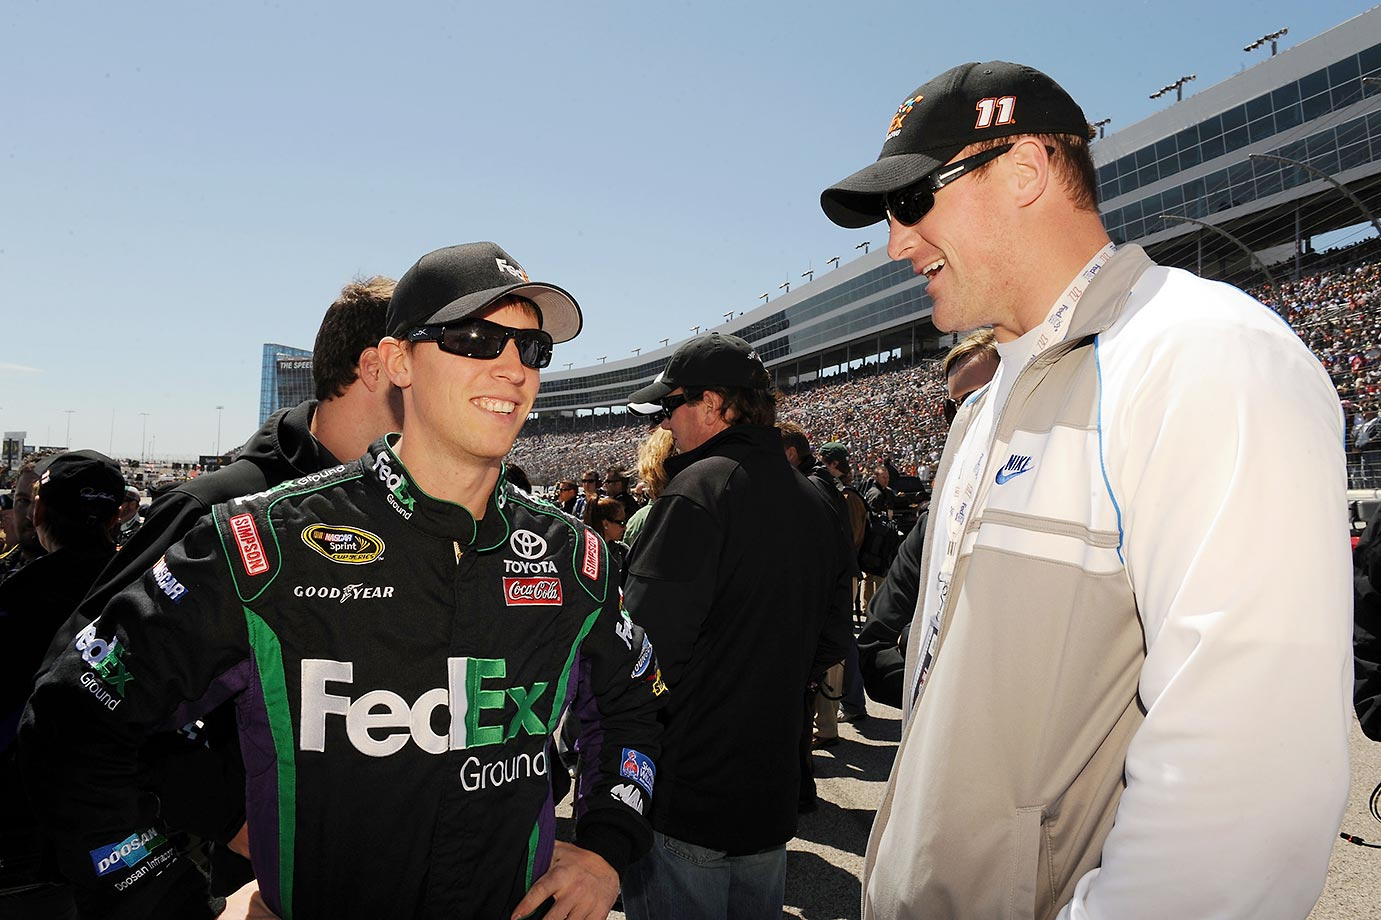 Witten with Denny Hamlin before a NASCAR race in Fort Worth.